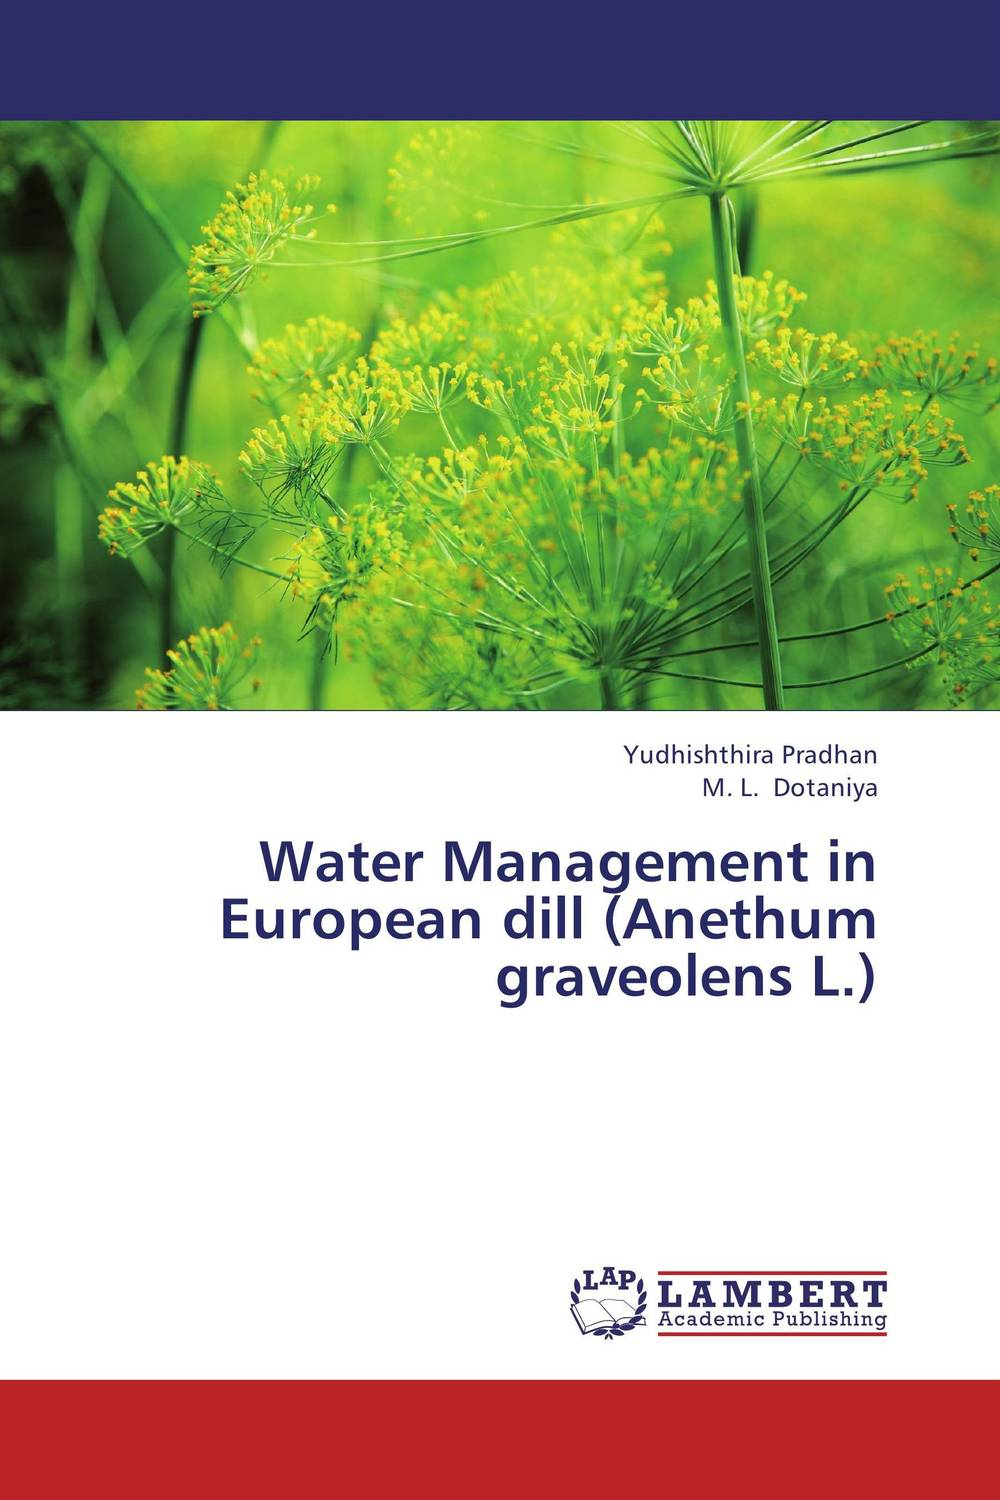 Water Management in European dill (Anethum graveolens L.) bride of the water god v 3